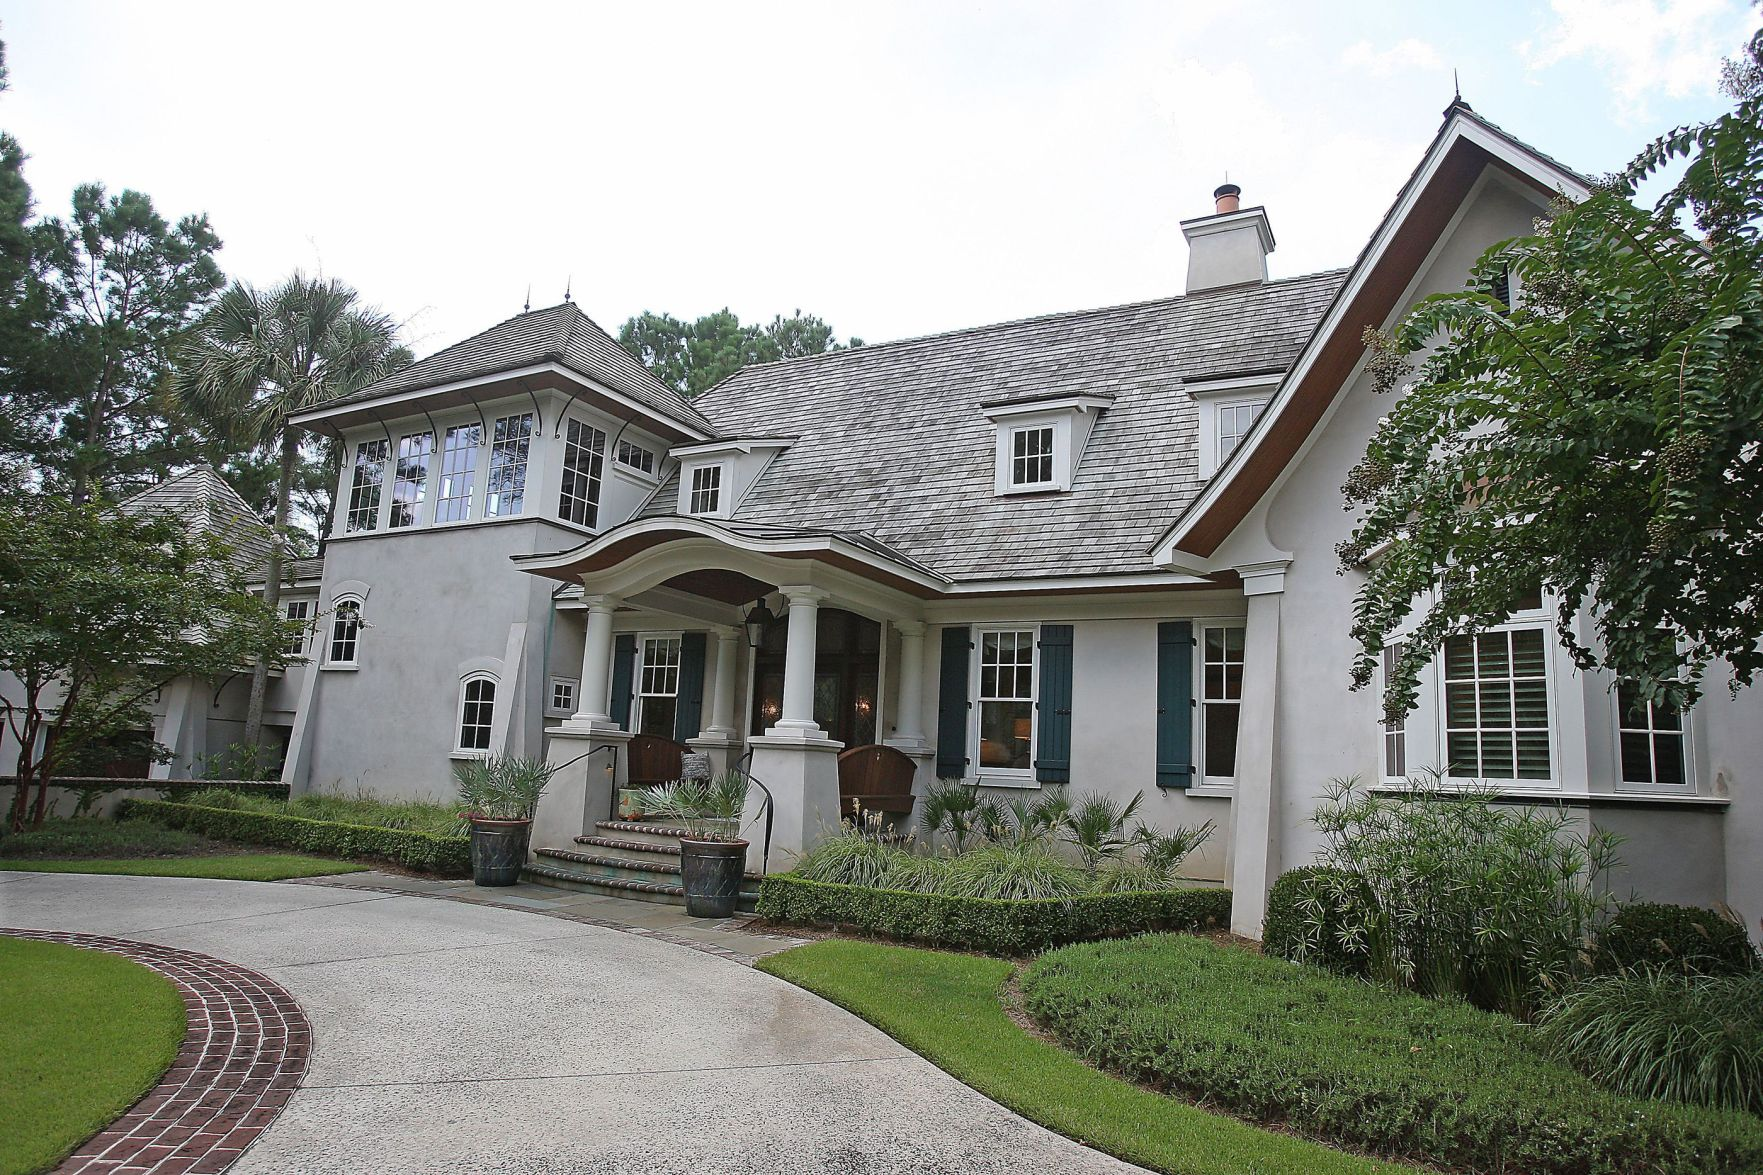 158 Nicholas Carteret Circle Columned Home With European Feel Offers Pool,  Gardens, Lagoonside Setting